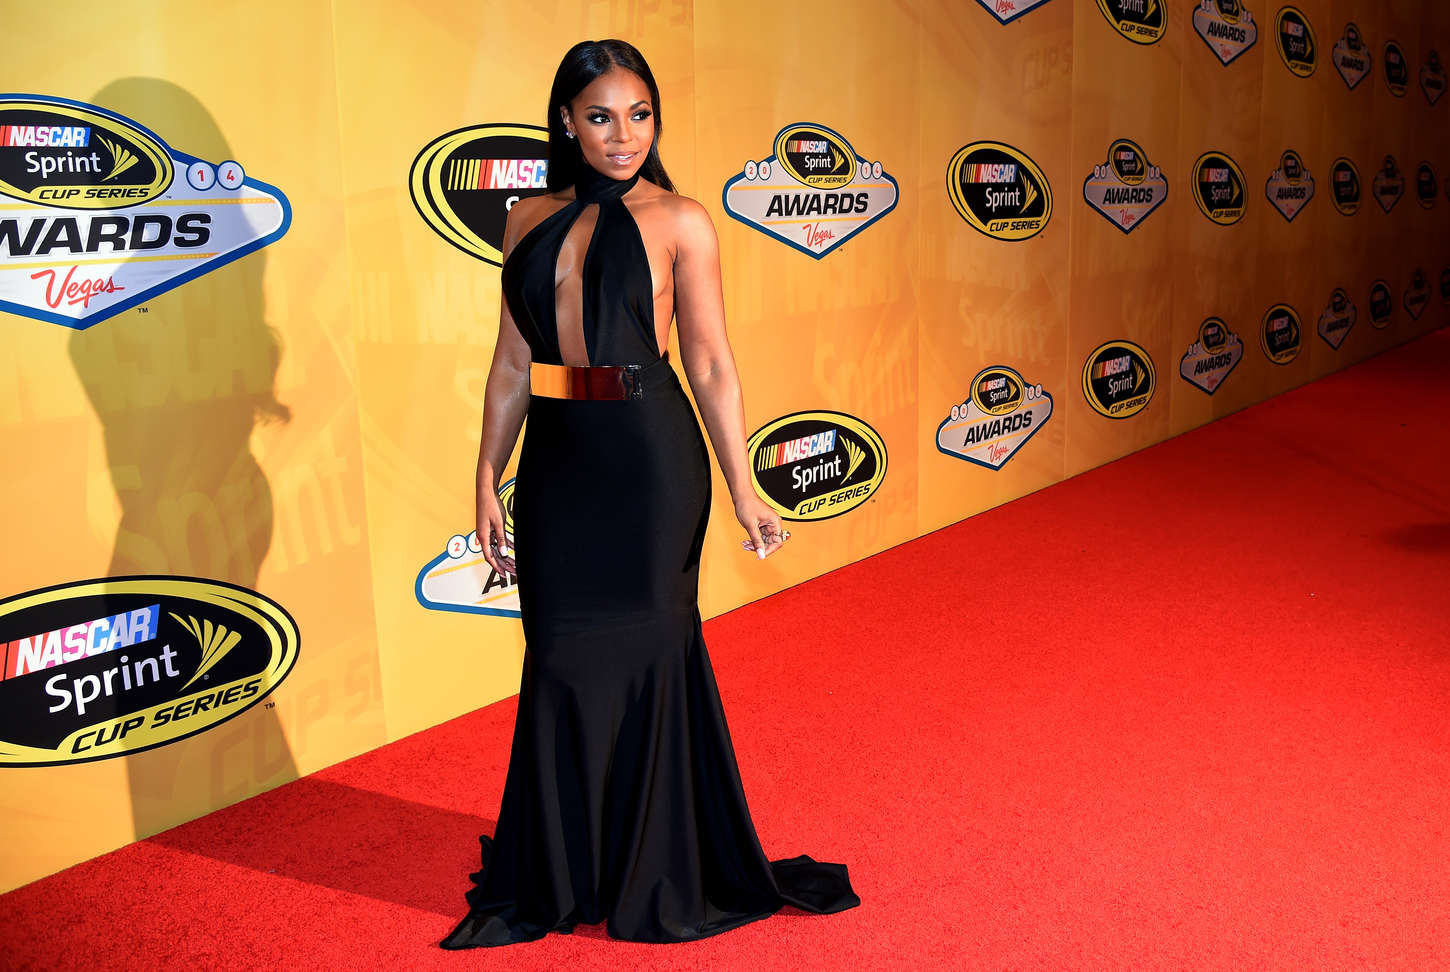 Ashanti Nascar Sprint Cup Series Awards in Las Vegas